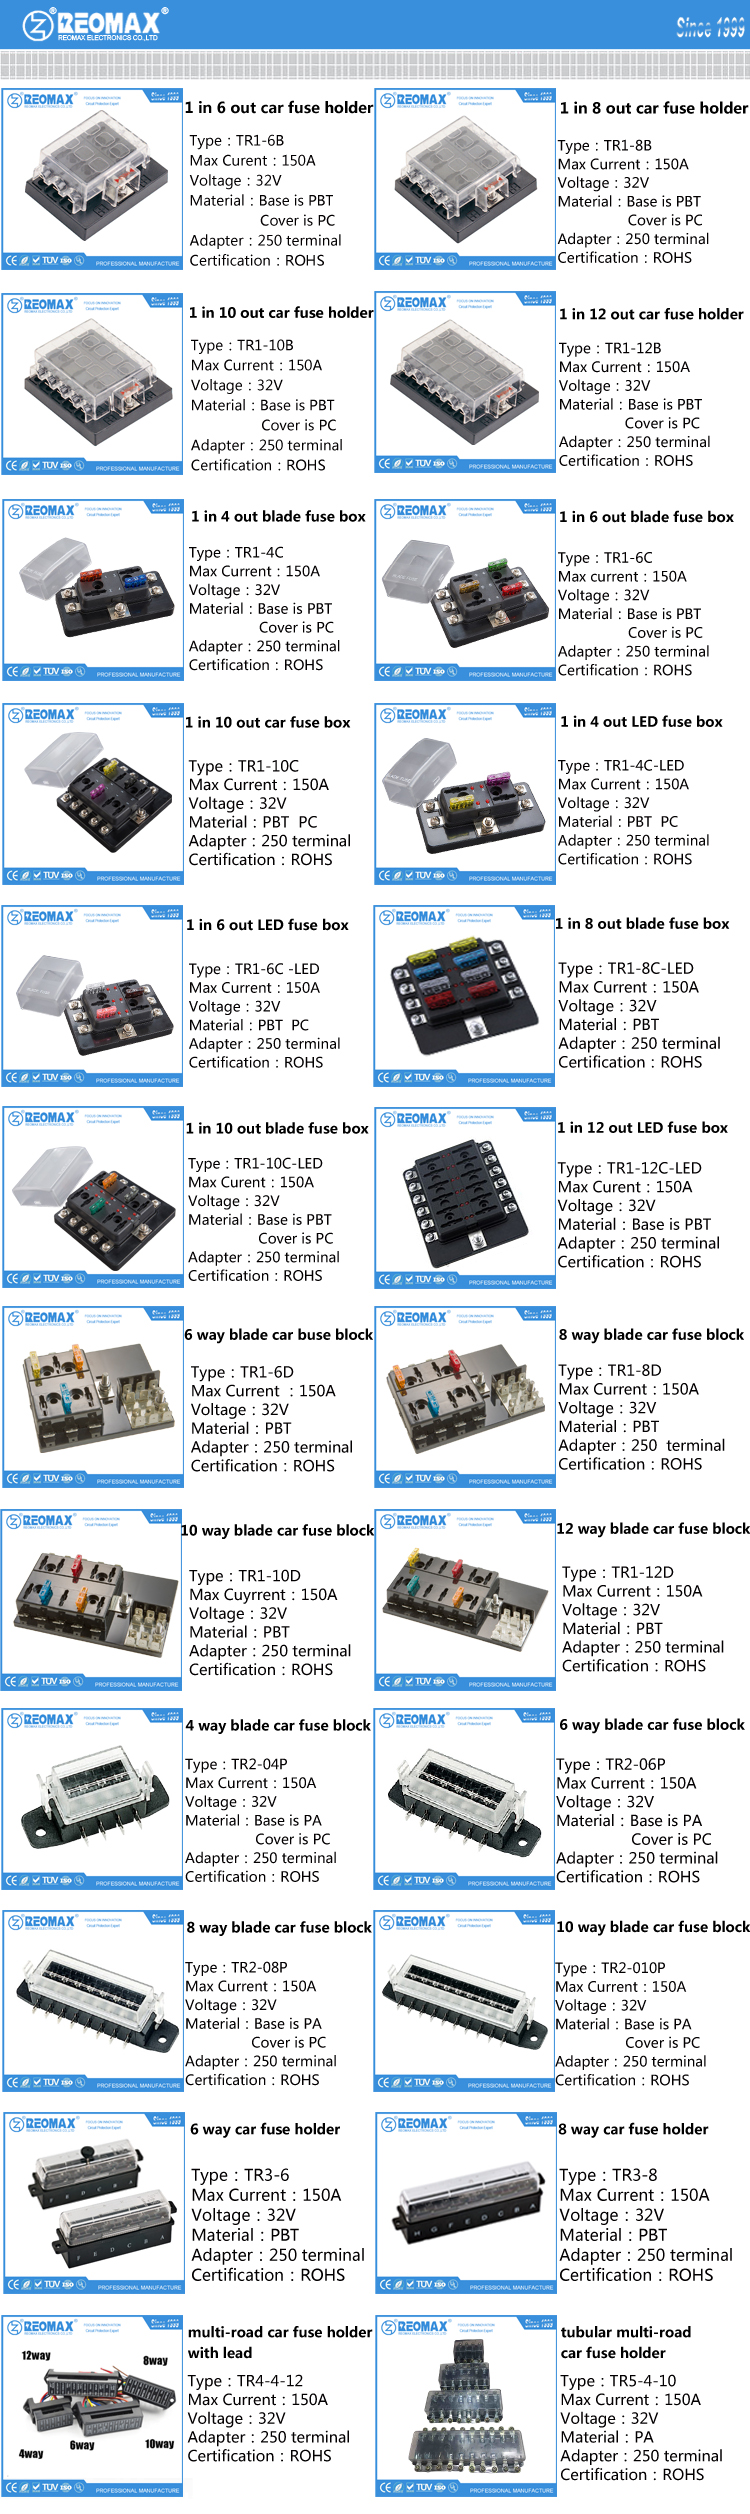 Van Boat Car Audio Tractor Marine Standard Atc Ato 15a 30a 35a 40a Fuse Box Relay Faq Of Automotive Blade Holder Block Series